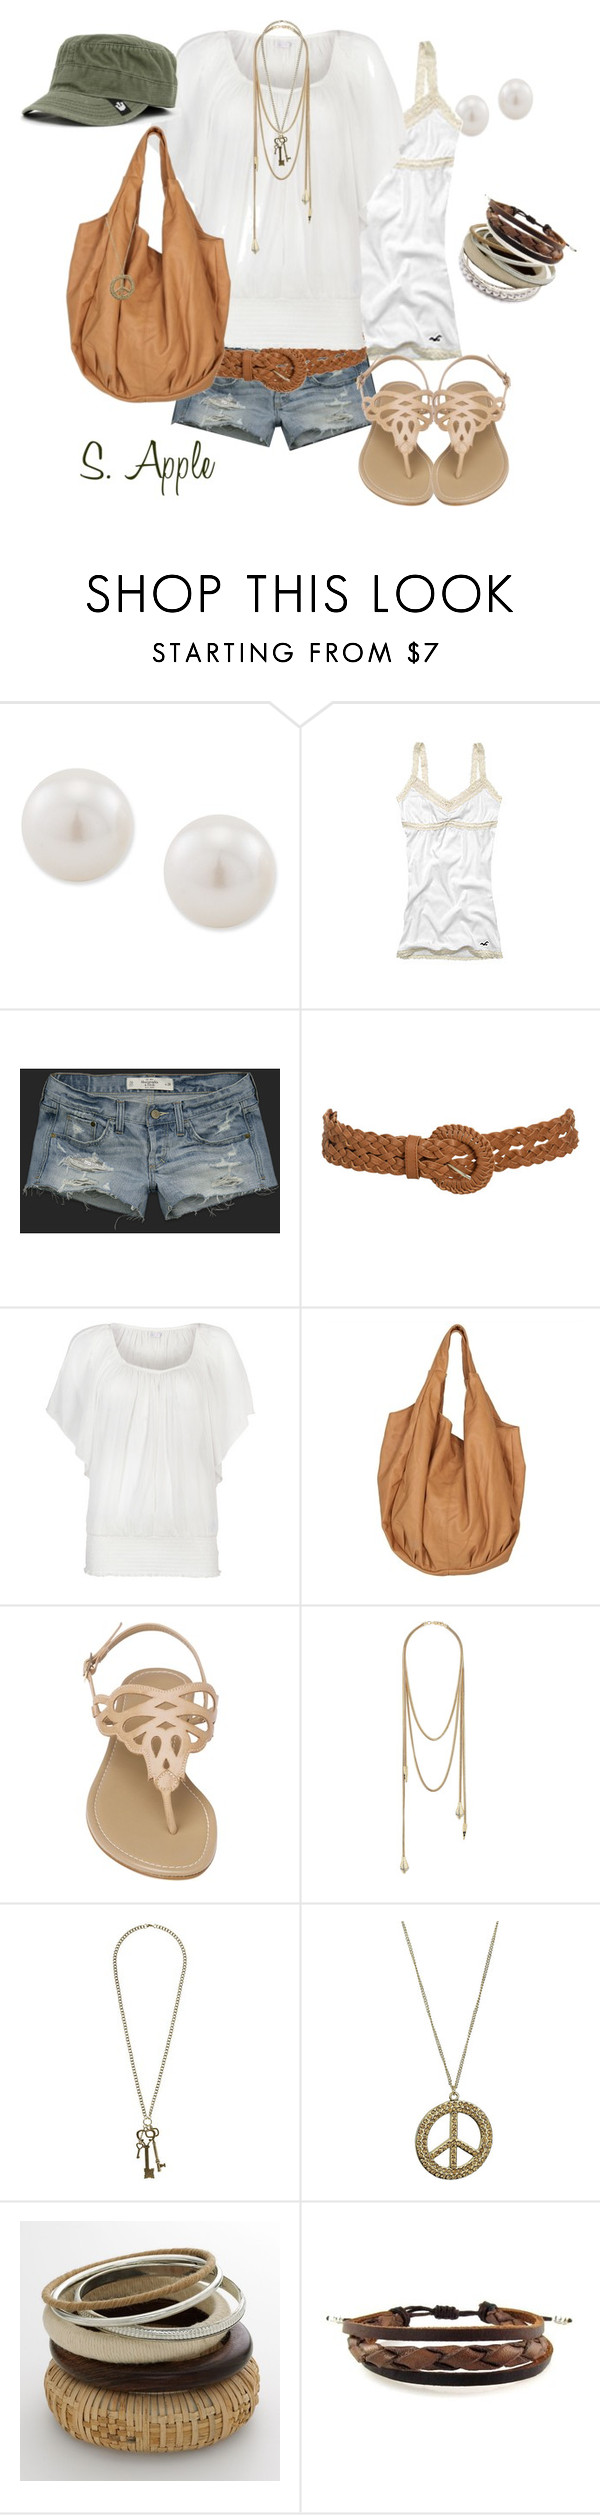 """""""A favorite outfit"""" by sapple324 ❤ liked on Polyvore featuring Carolee, Hollister Co., Abercrombie & Fitch, Wet Seal, Phase Eight, maurices, Miss Selfridge, Sonoma life + style and Goorin"""